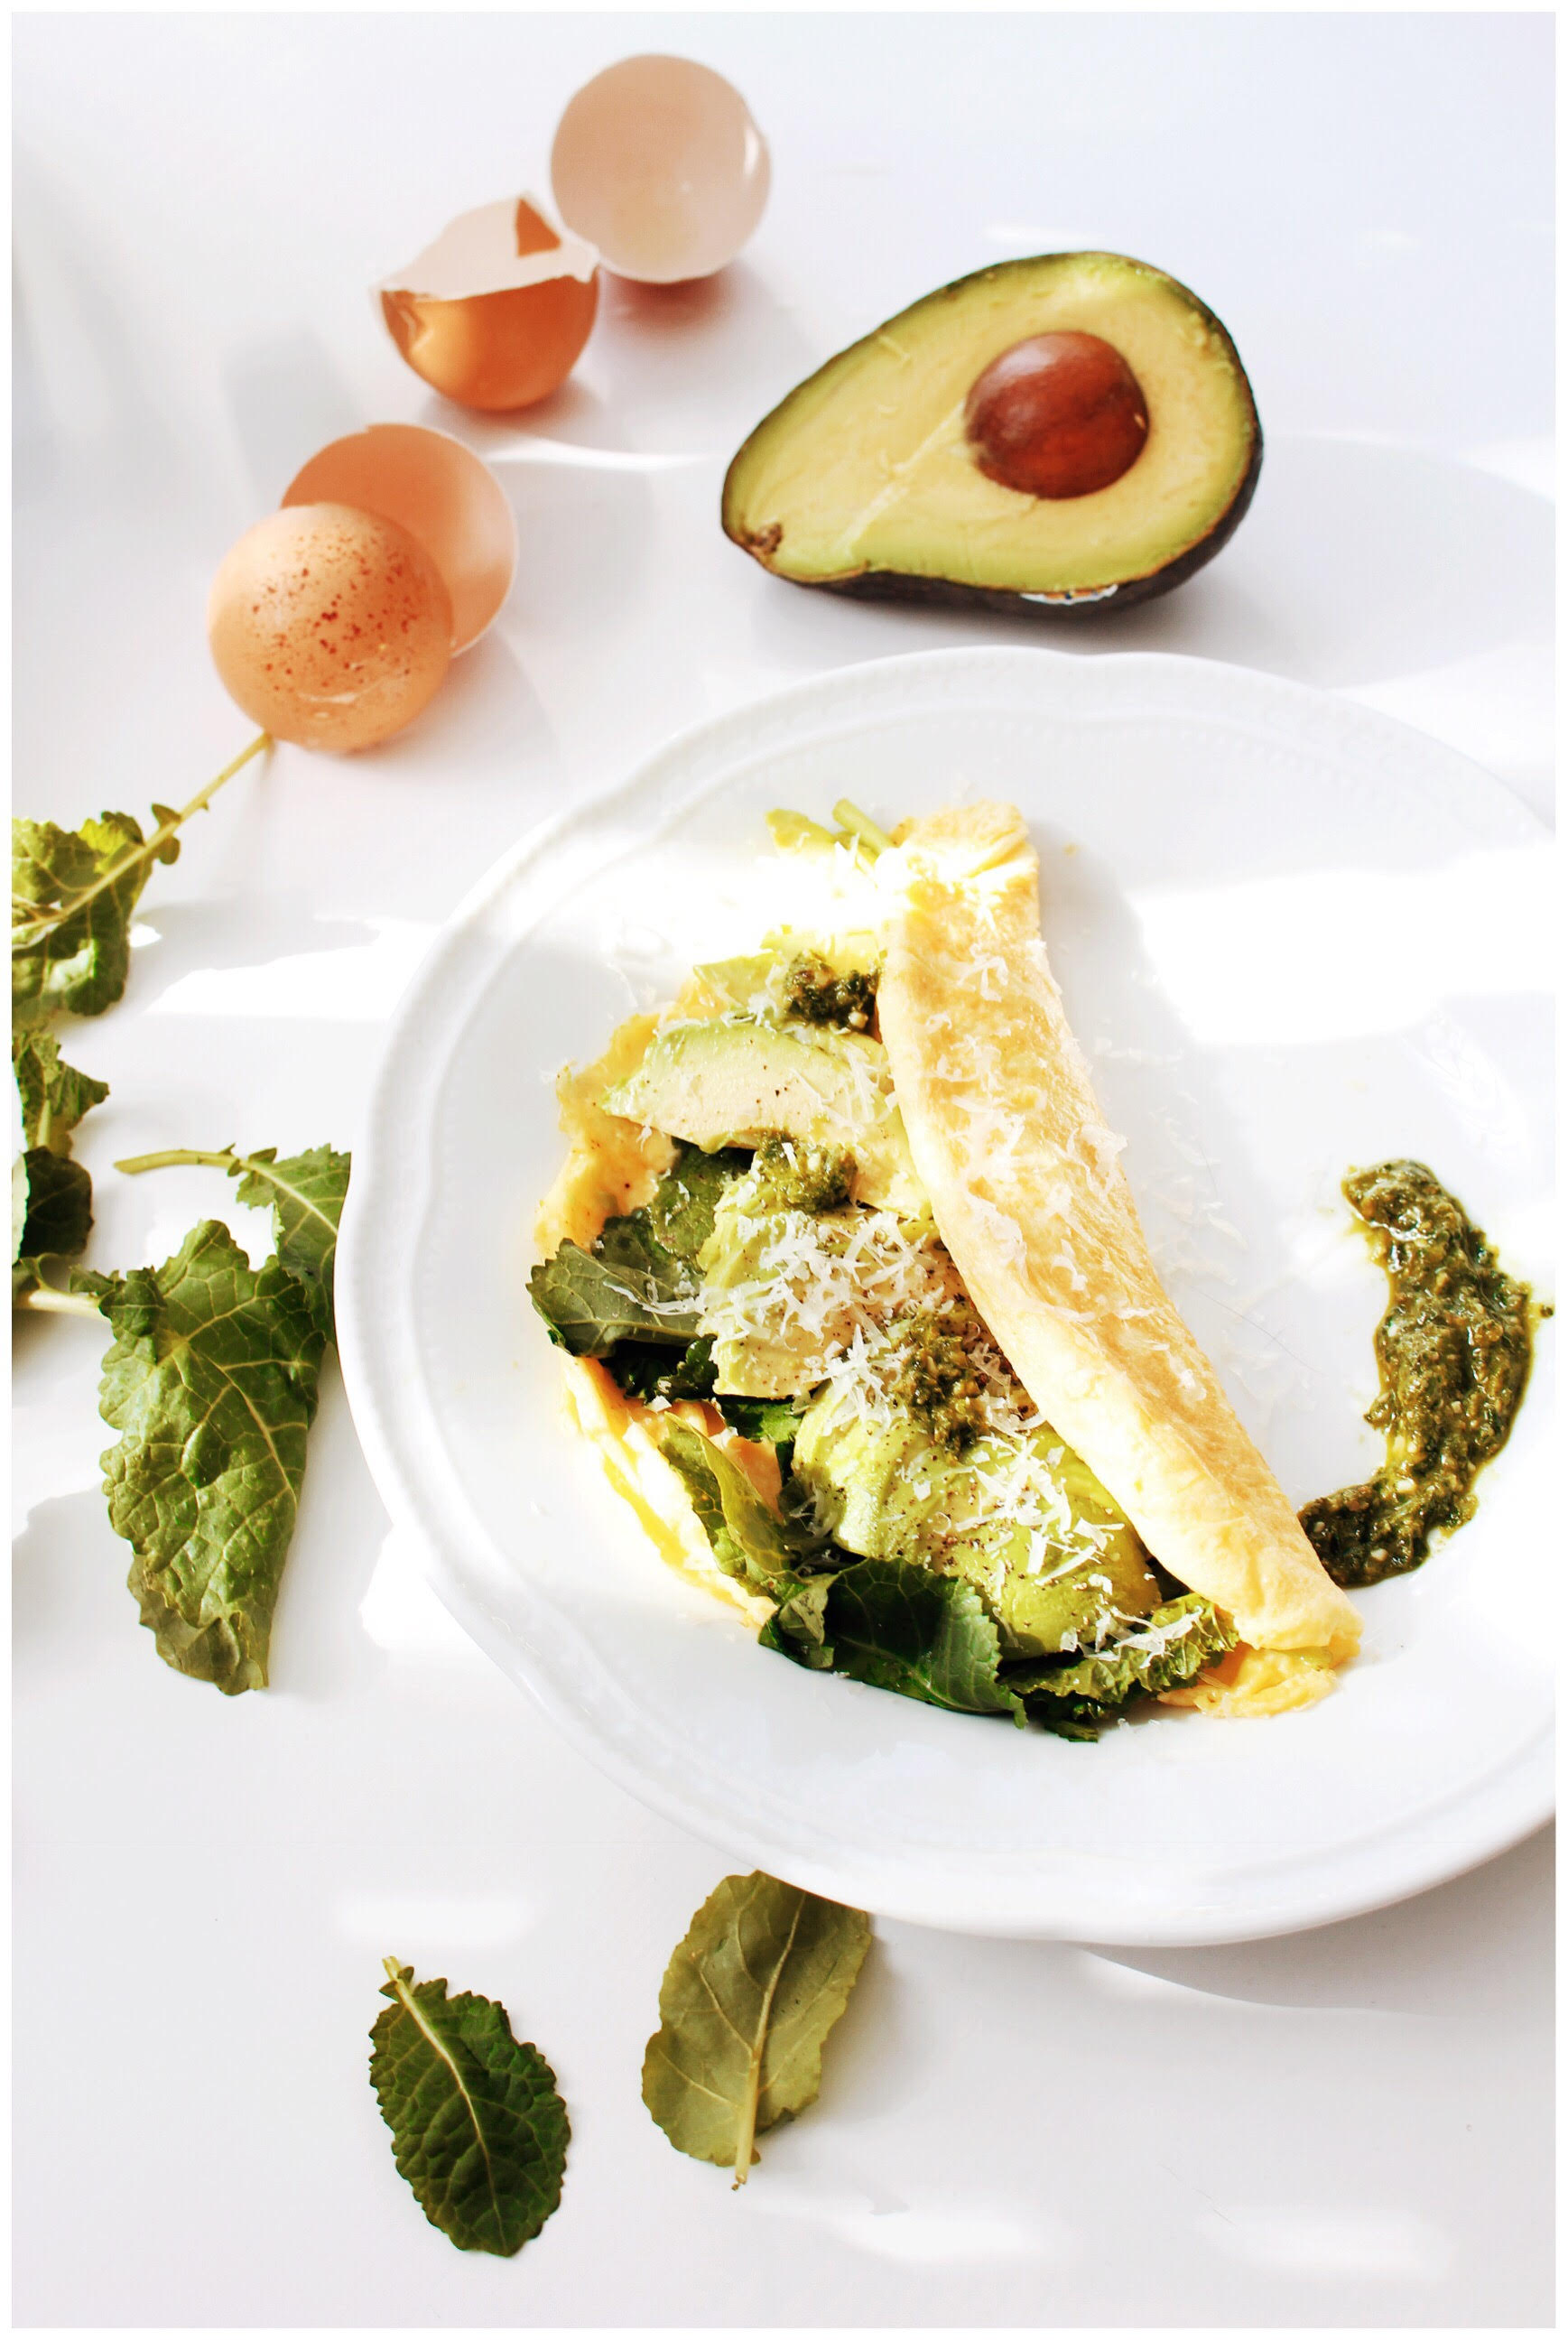 Recipe Idea - French Omelette with Kale, Avocado and Pesto